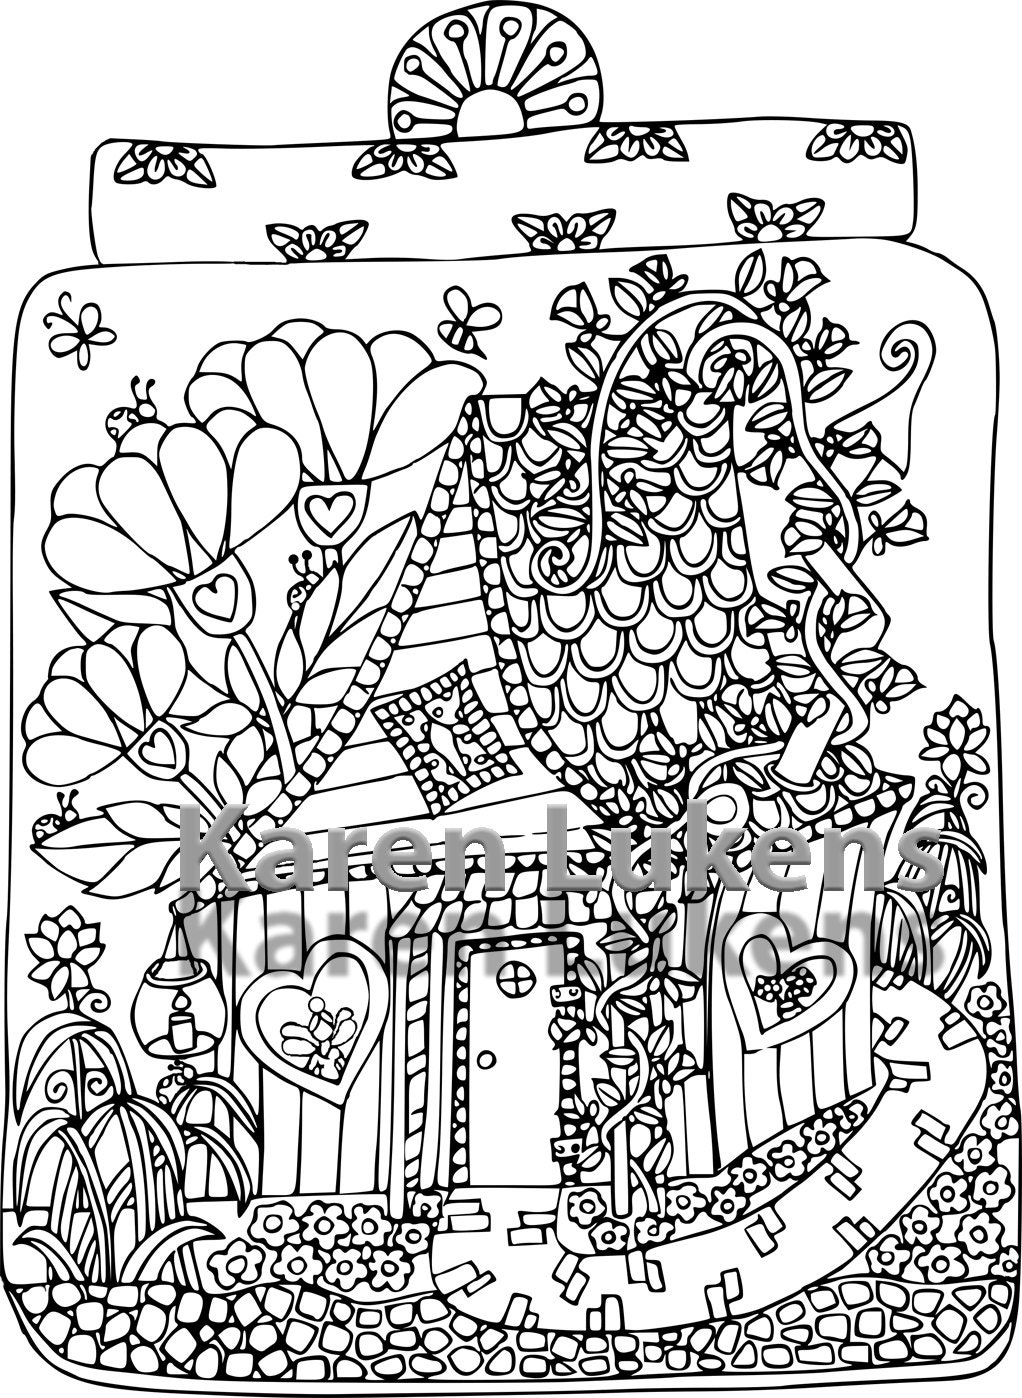 Coloring book download zip - Coloring Book Download Zip 37